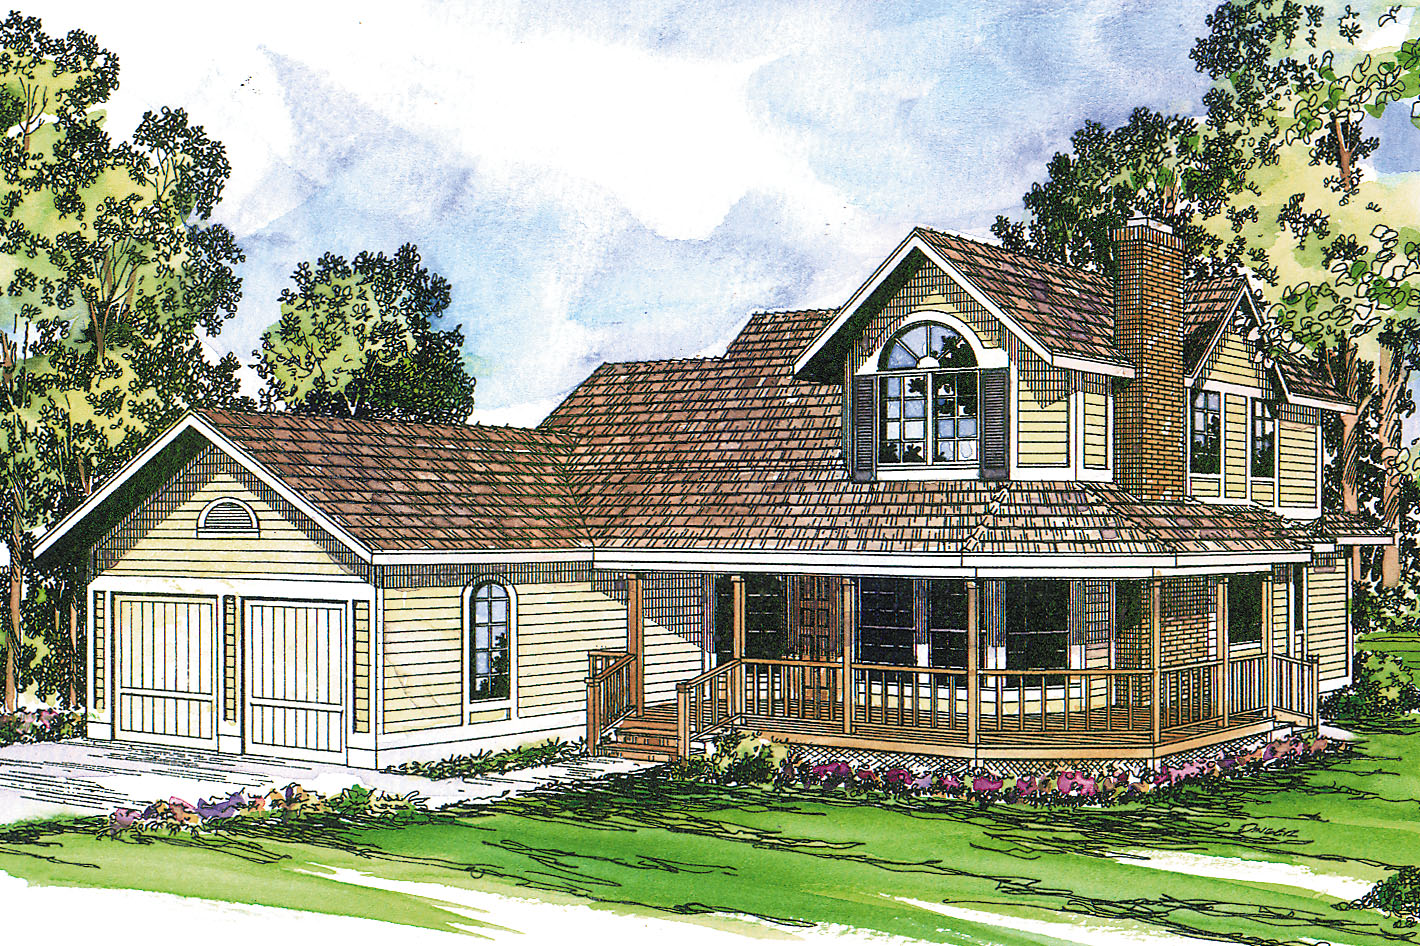 Featured House Plan of the Week, Country House Plan, Home Plan, Corbin 10-020